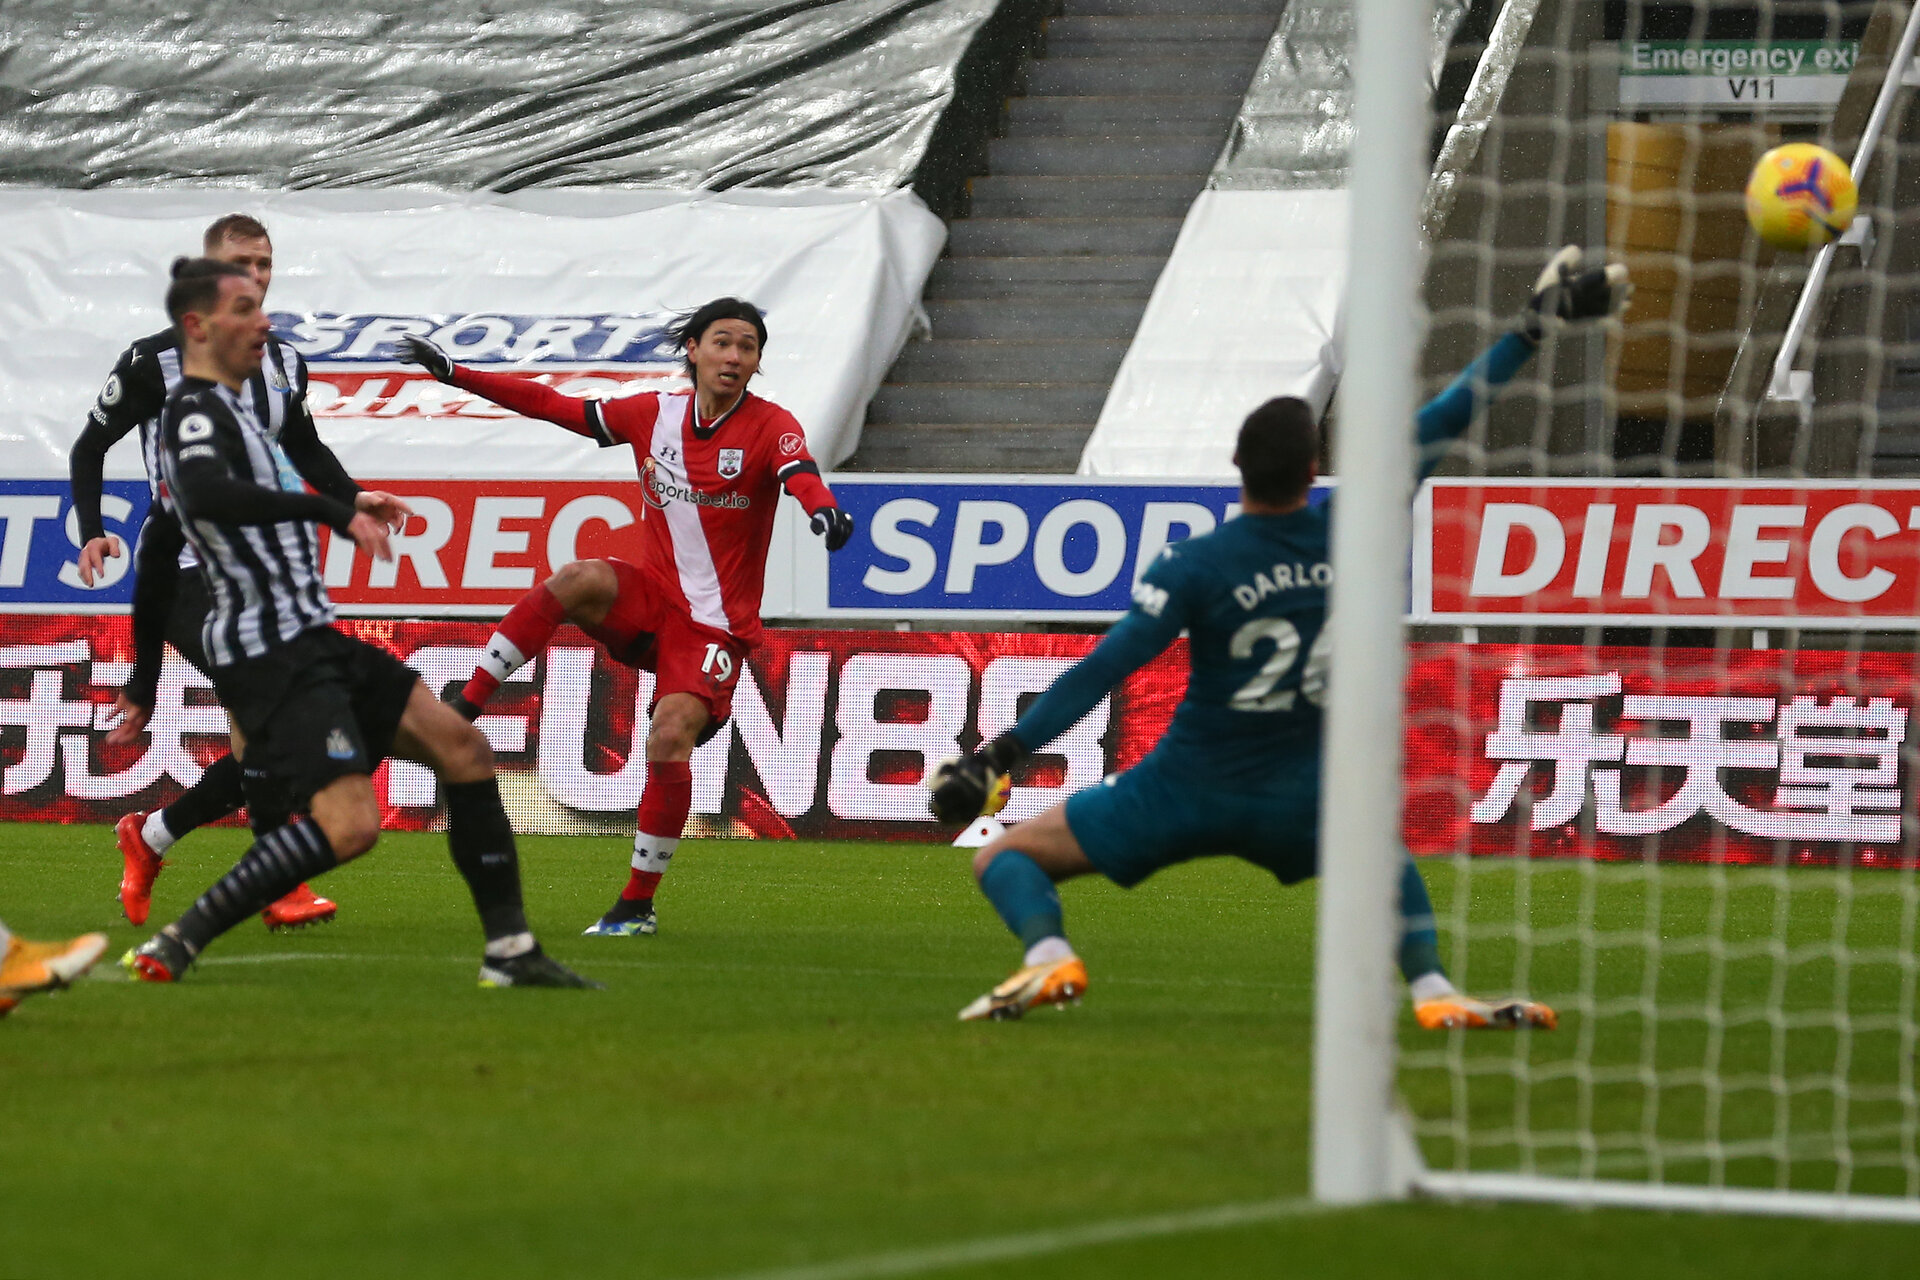 NEWCASTLE UPON TYNE, ENGLAND - FEBRUARY 06: Takumi Minamino of Southampton opens the scoring for Southampton during the Premier League match between Newcastle United and Southampton at St. James Park on February 06, 2021 in Newcastle upon Tyne, England. Sporting stadiums around the UK remain under strict restrictions due to the Coronavirus Pandemic as Government social distancing laws prohibit fans inside venues resulting in games being played behind closed doors. (Photo by Matt Watson/Southampton FC via Getty Images)